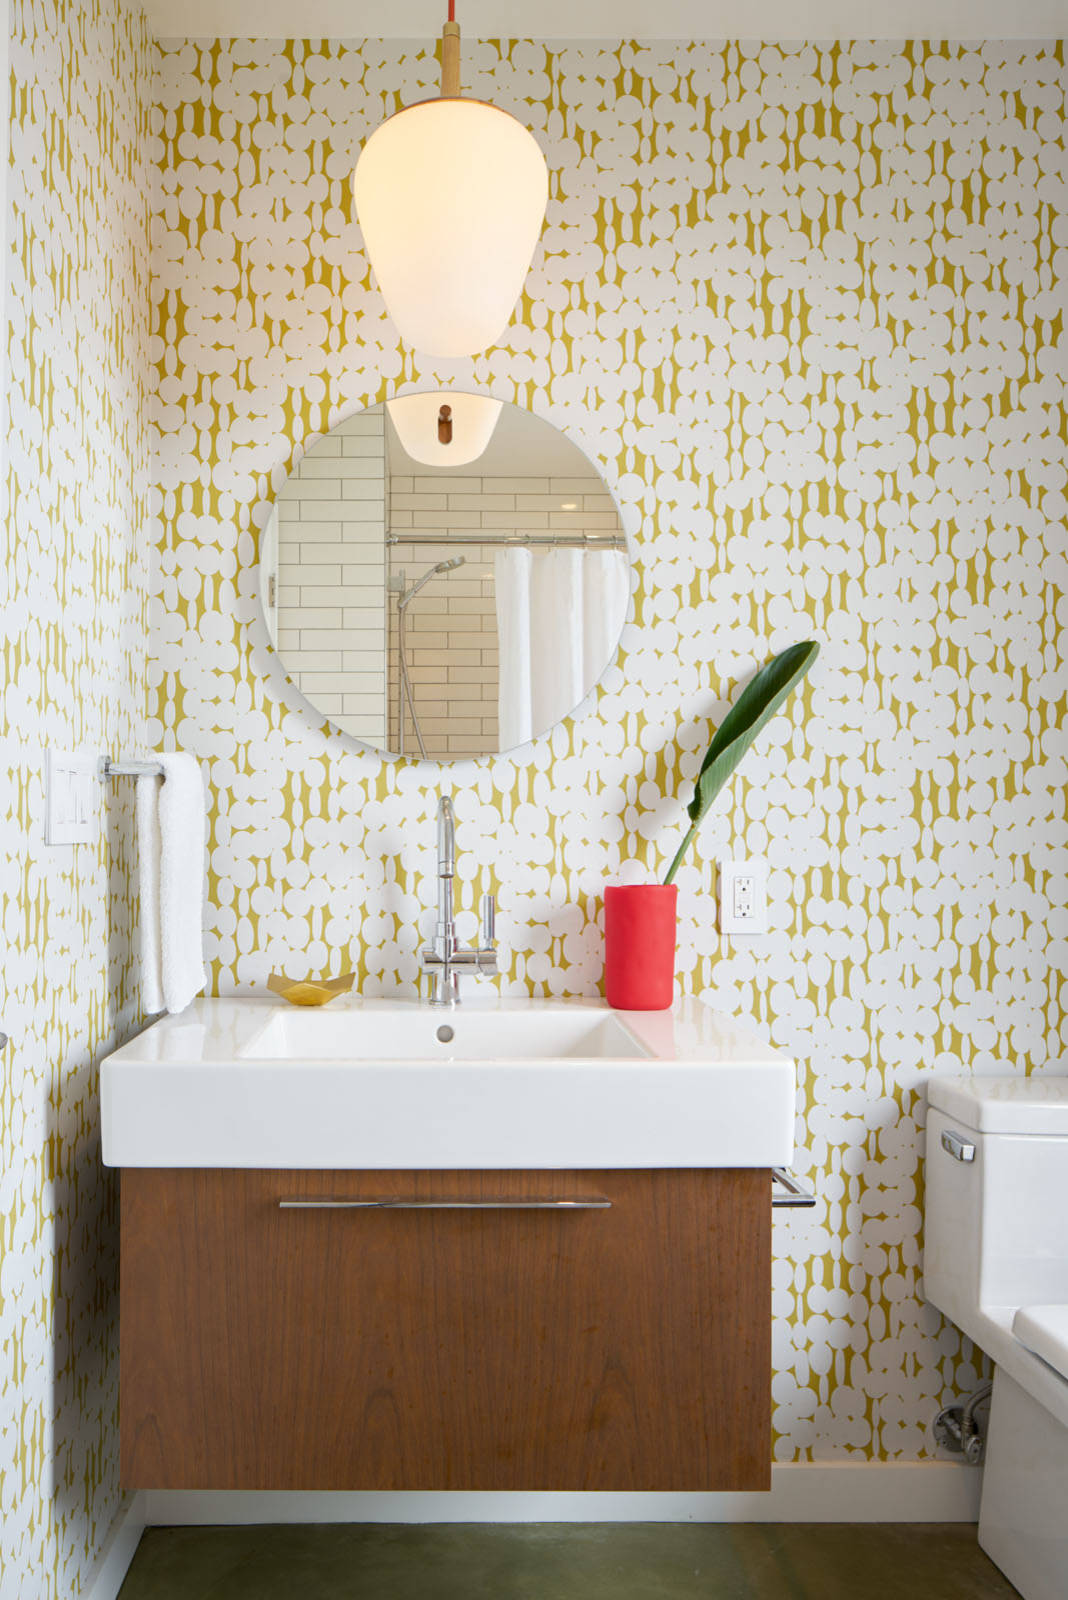 how to choose wallpaper for bathroom